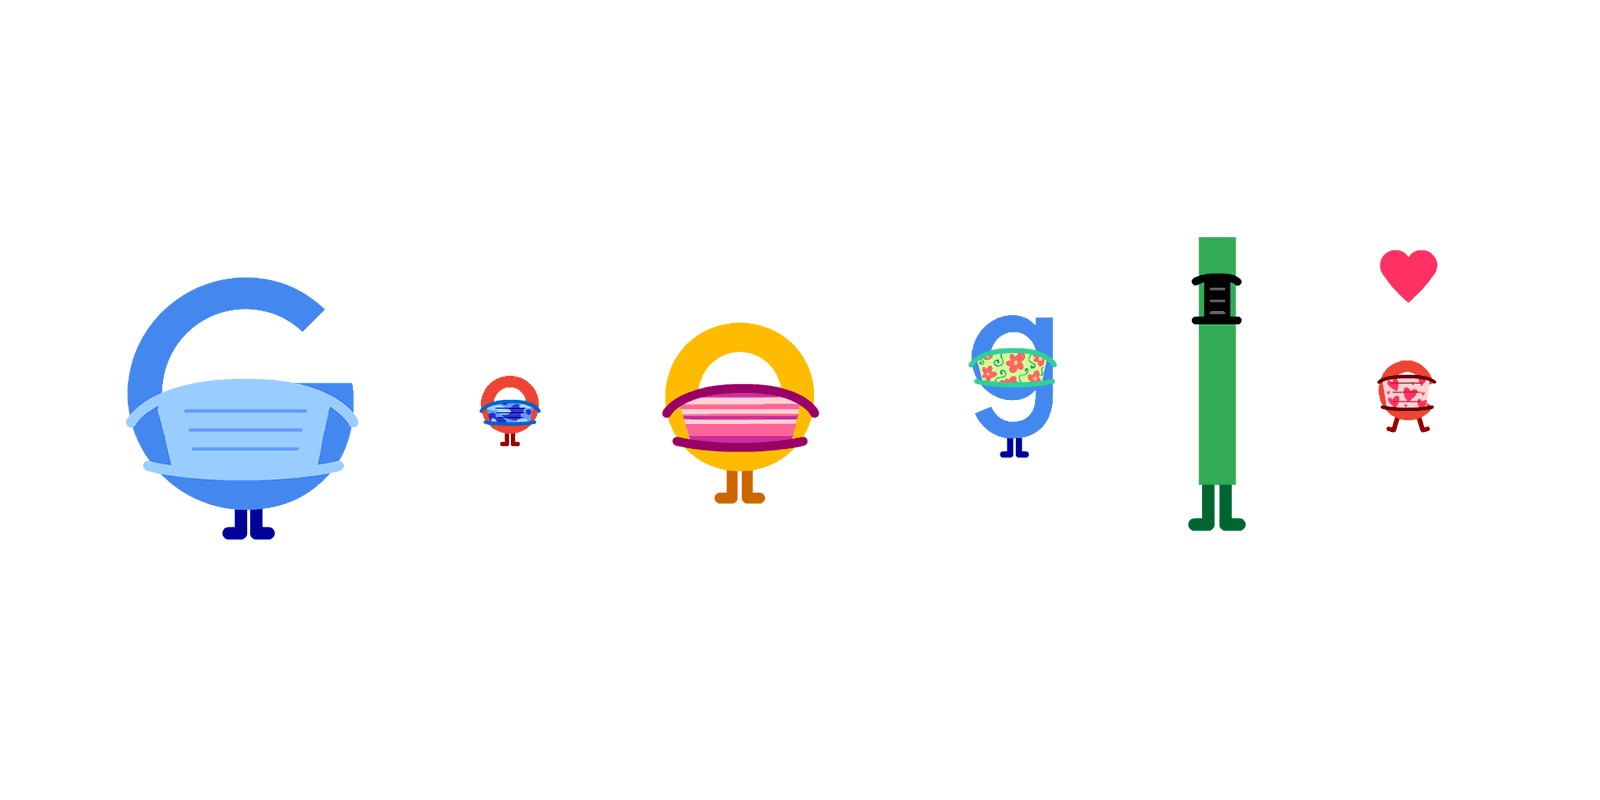 Google Doodle promotes COVID-19 prevention w/ masks and social distancing - 9to5Google